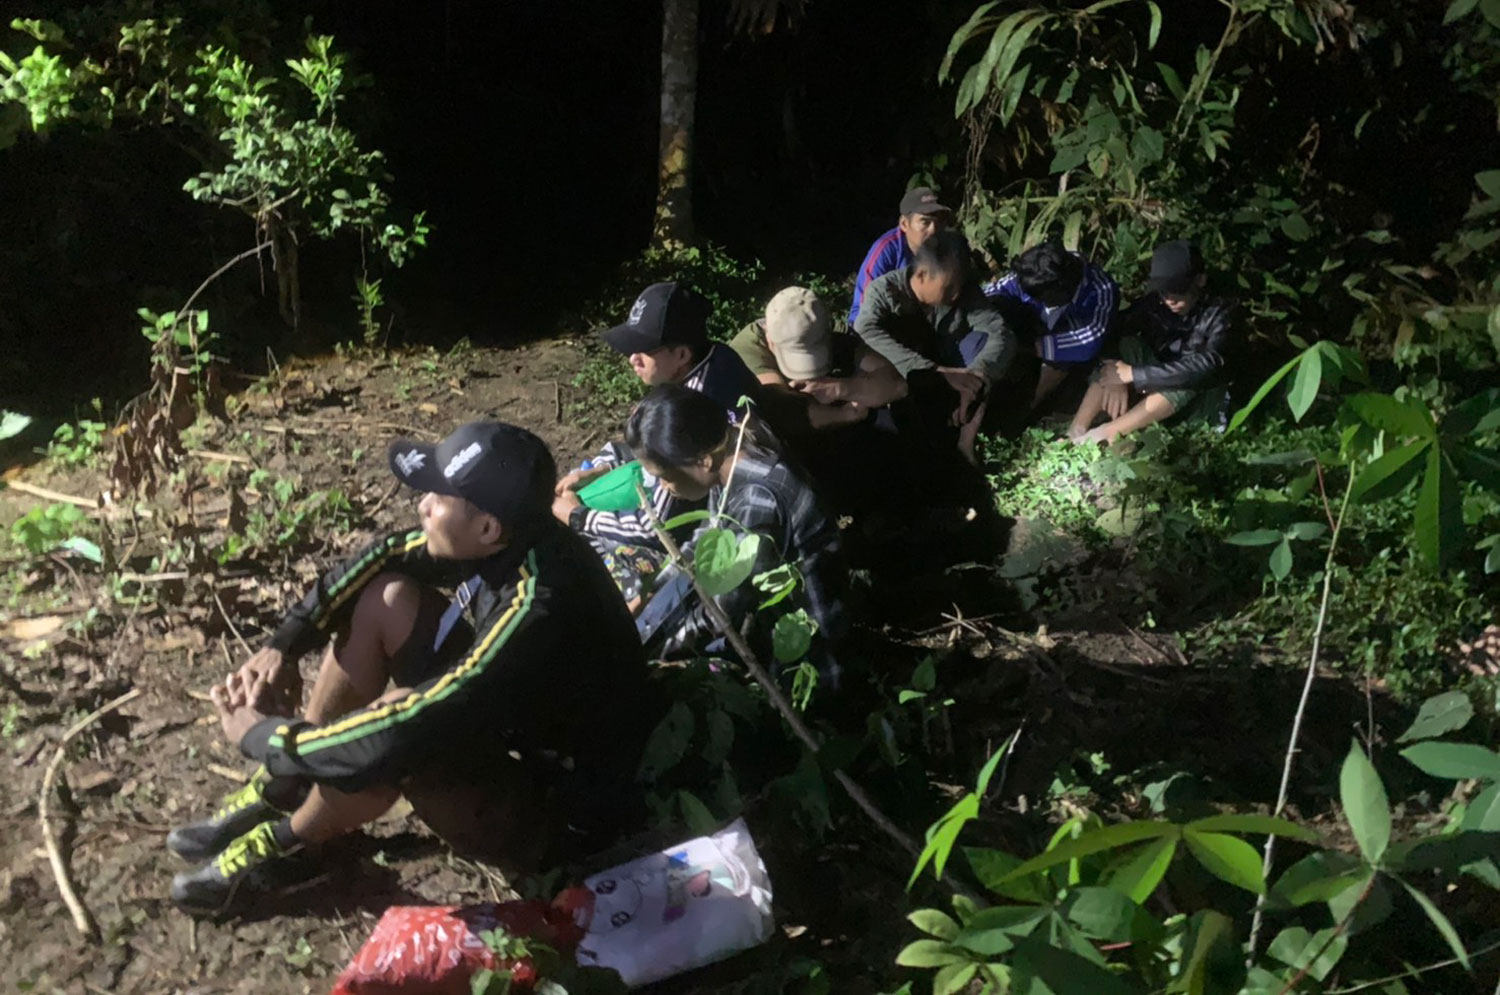 Eight Myanmar nationals are found in a forest near a pomelo planation in Sangkhla Buri district, Kanchanaburi, on Wednesday night. They said 20 job seekers had crossed the border together along a natural path, and 12 had already been taken away by job agents. (Photo: Piyarat Chongcharoen)